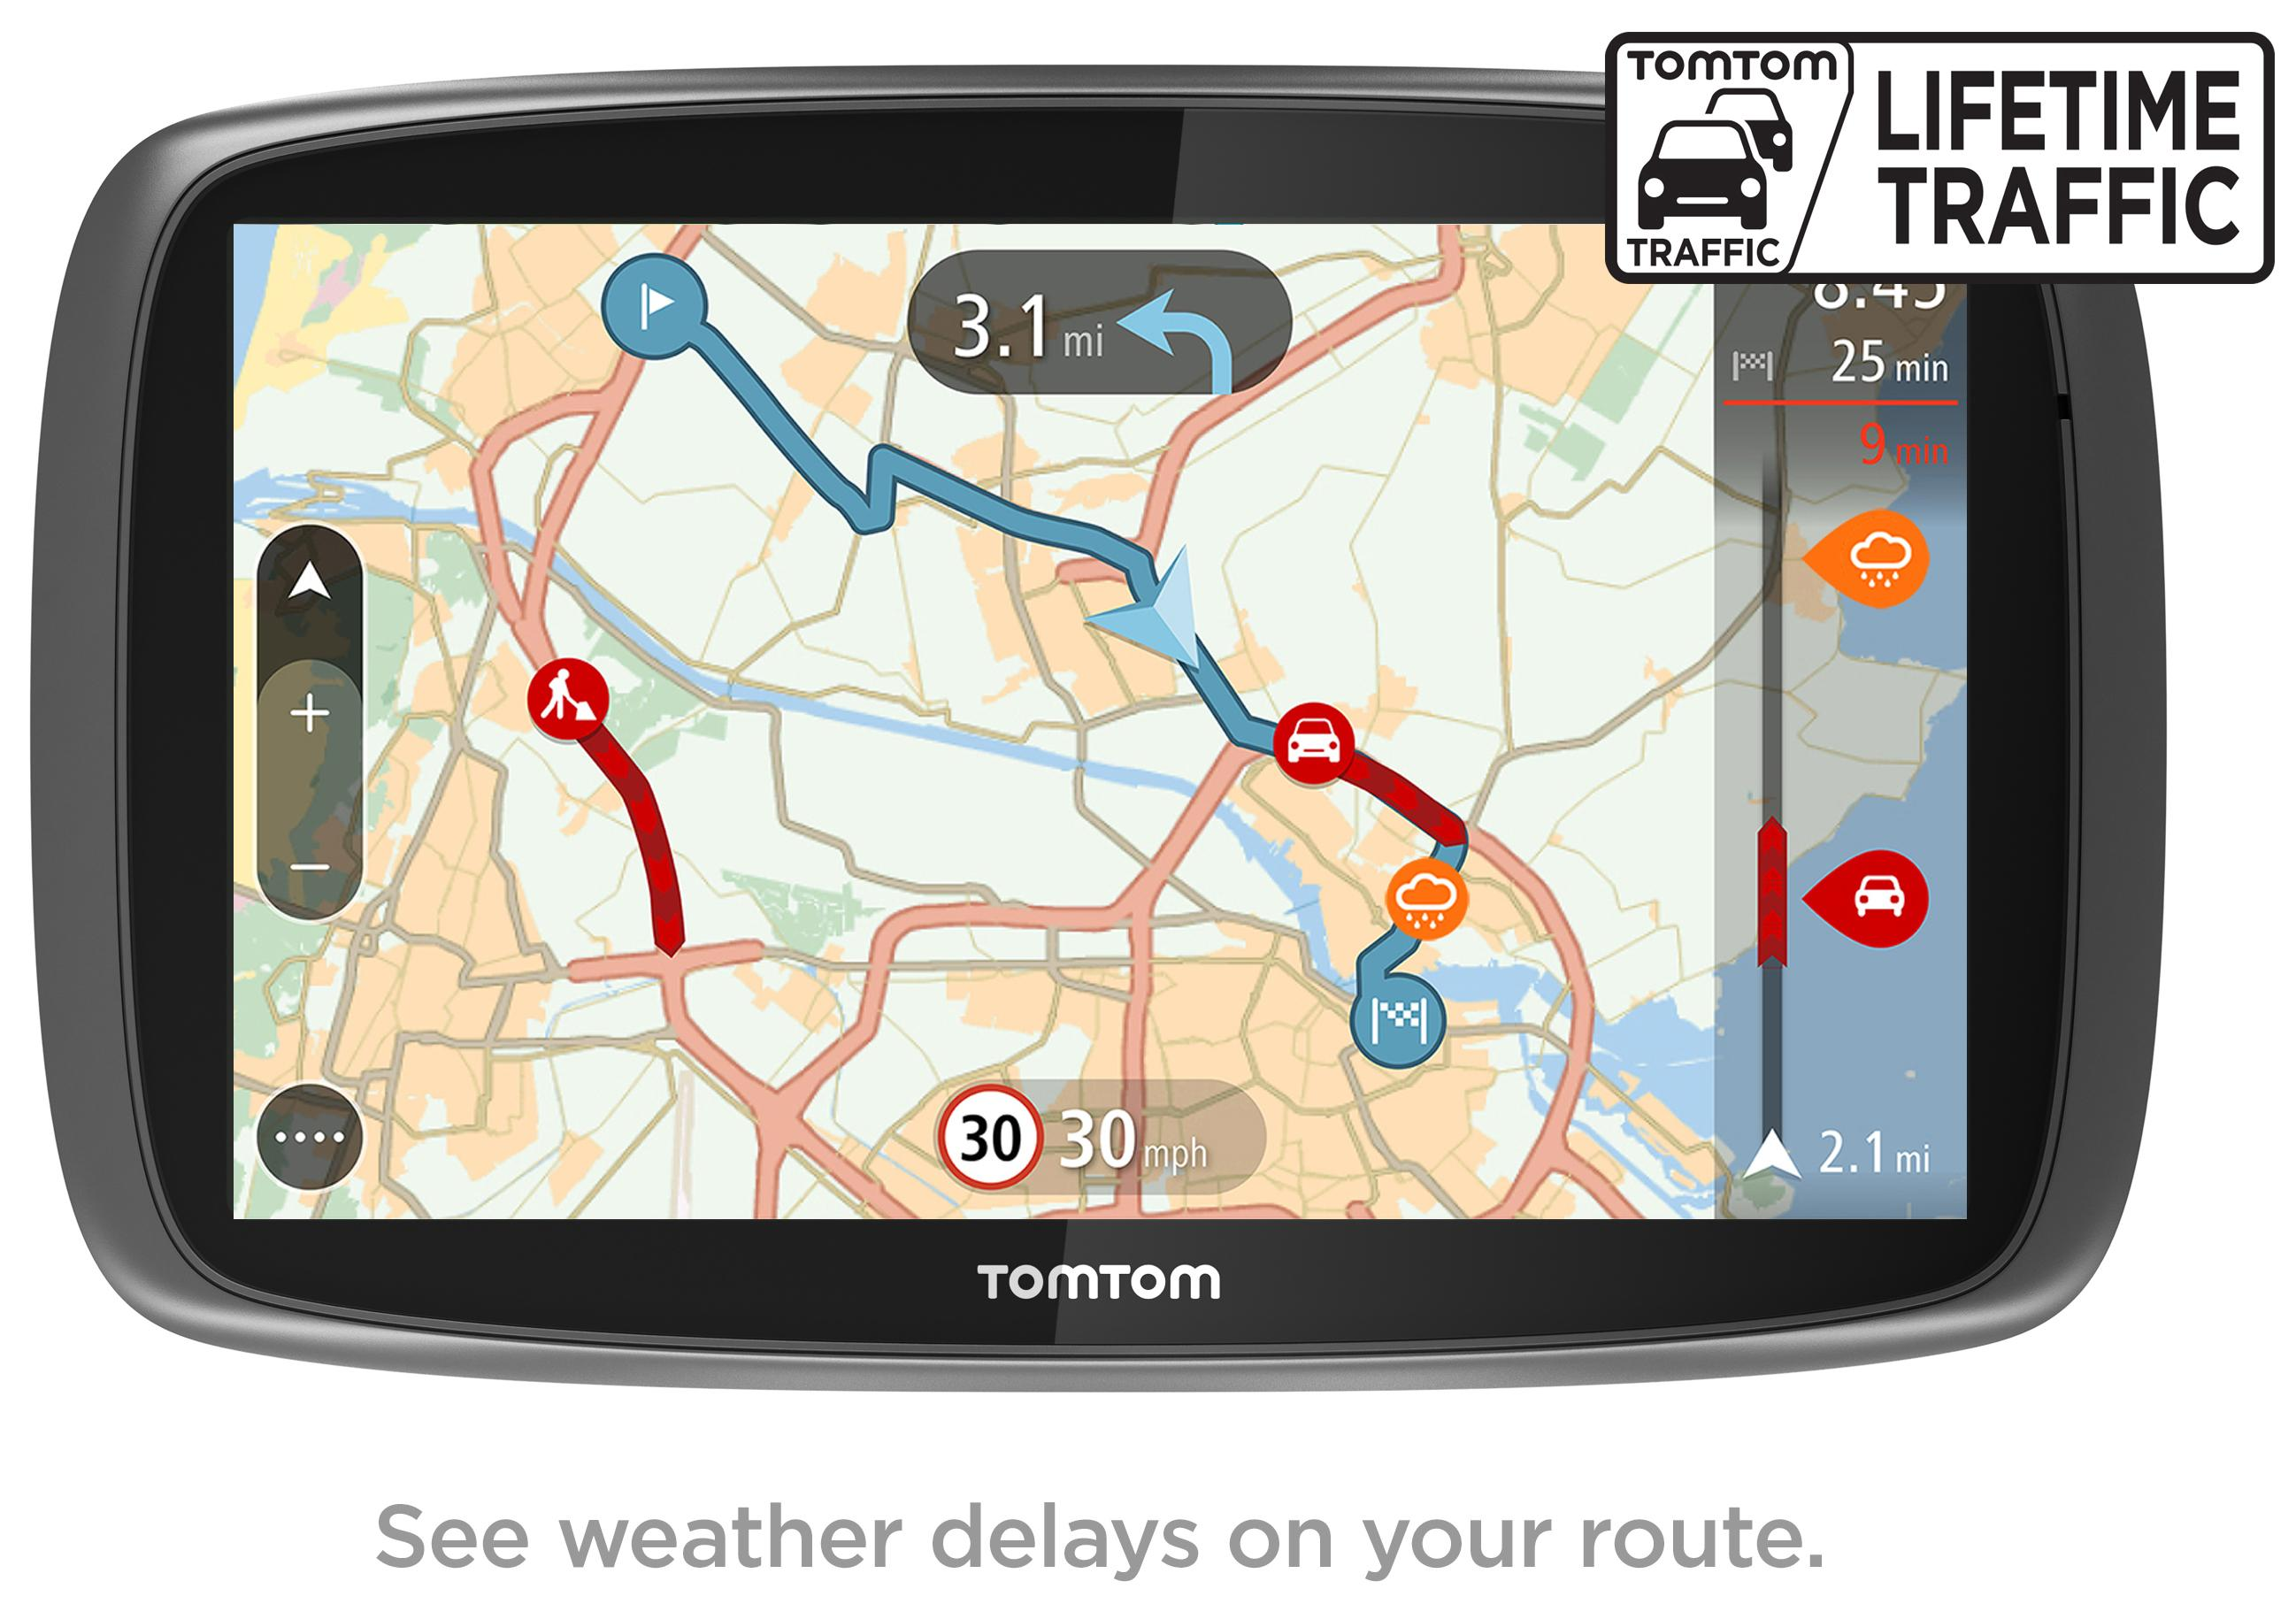 tomtom go 6100 6 sat nav gps navigation mydrive lifetime. Black Bedroom Furniture Sets. Home Design Ideas